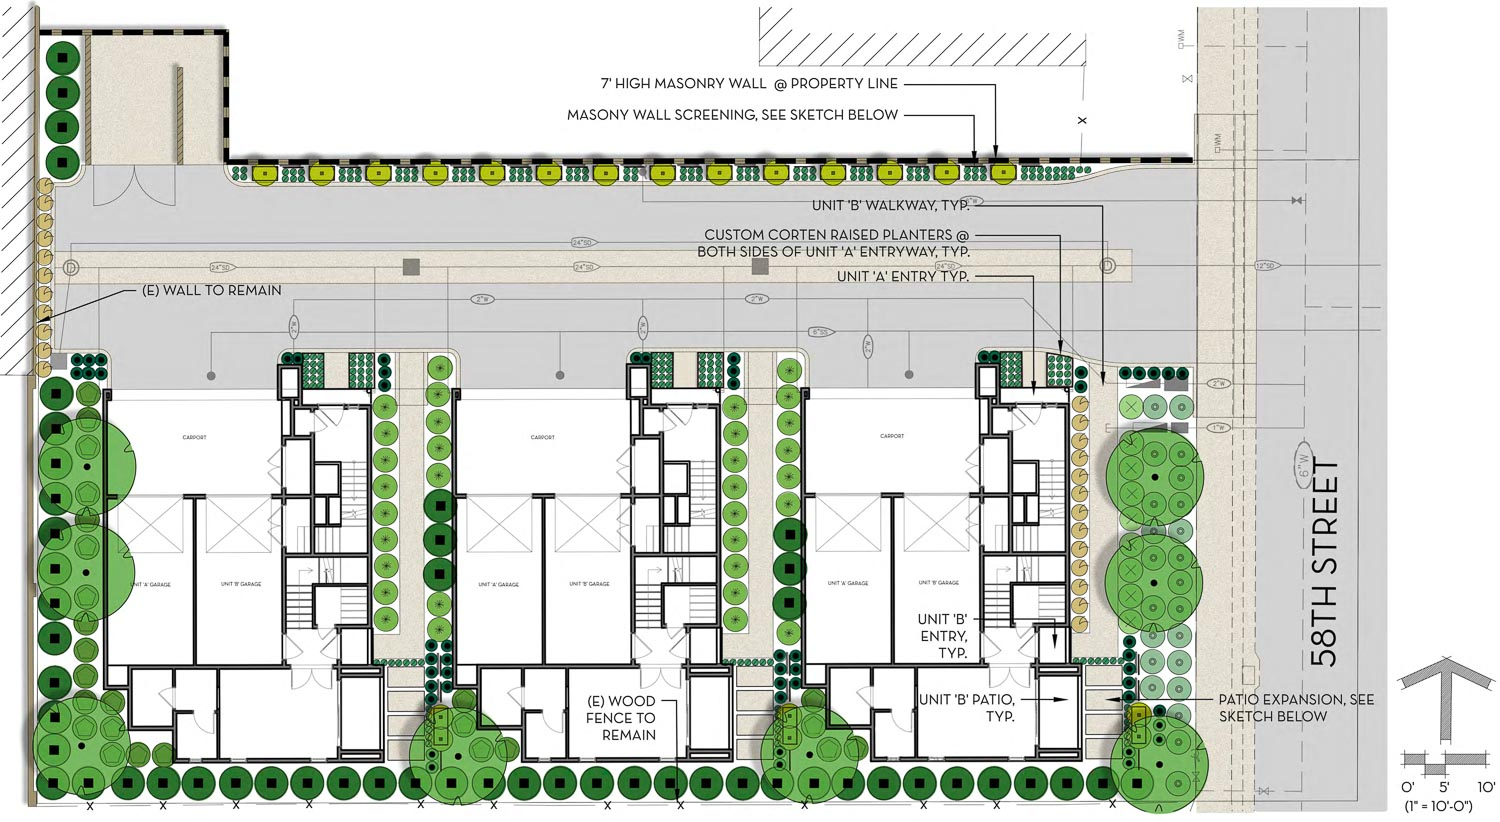 3040-3056 58th Street floor plan, design by Studio 81